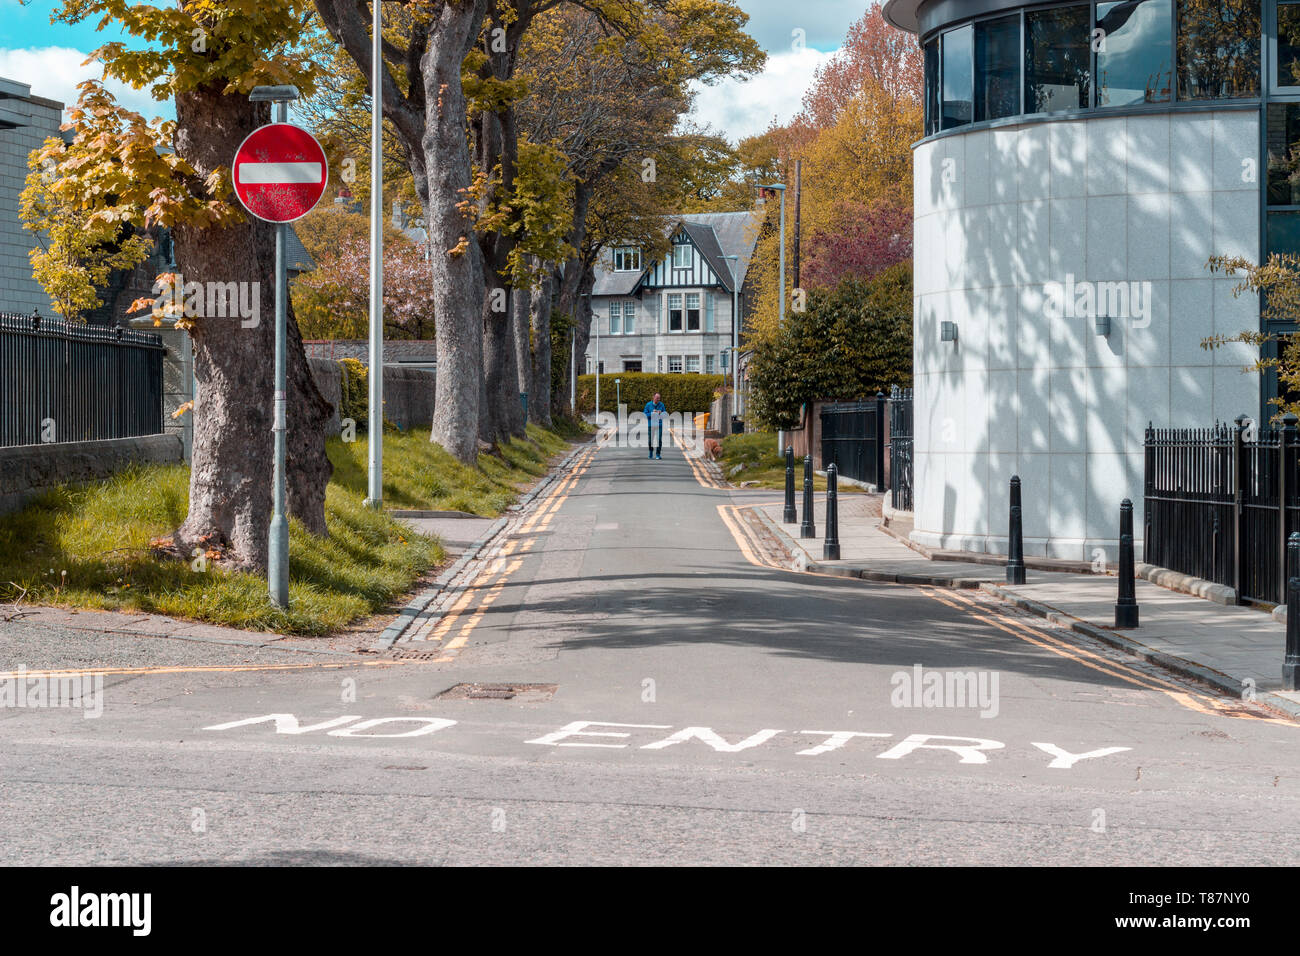 Street with 'no entry' marking leading to a house, Aberdeen, Scotland - Stock Image